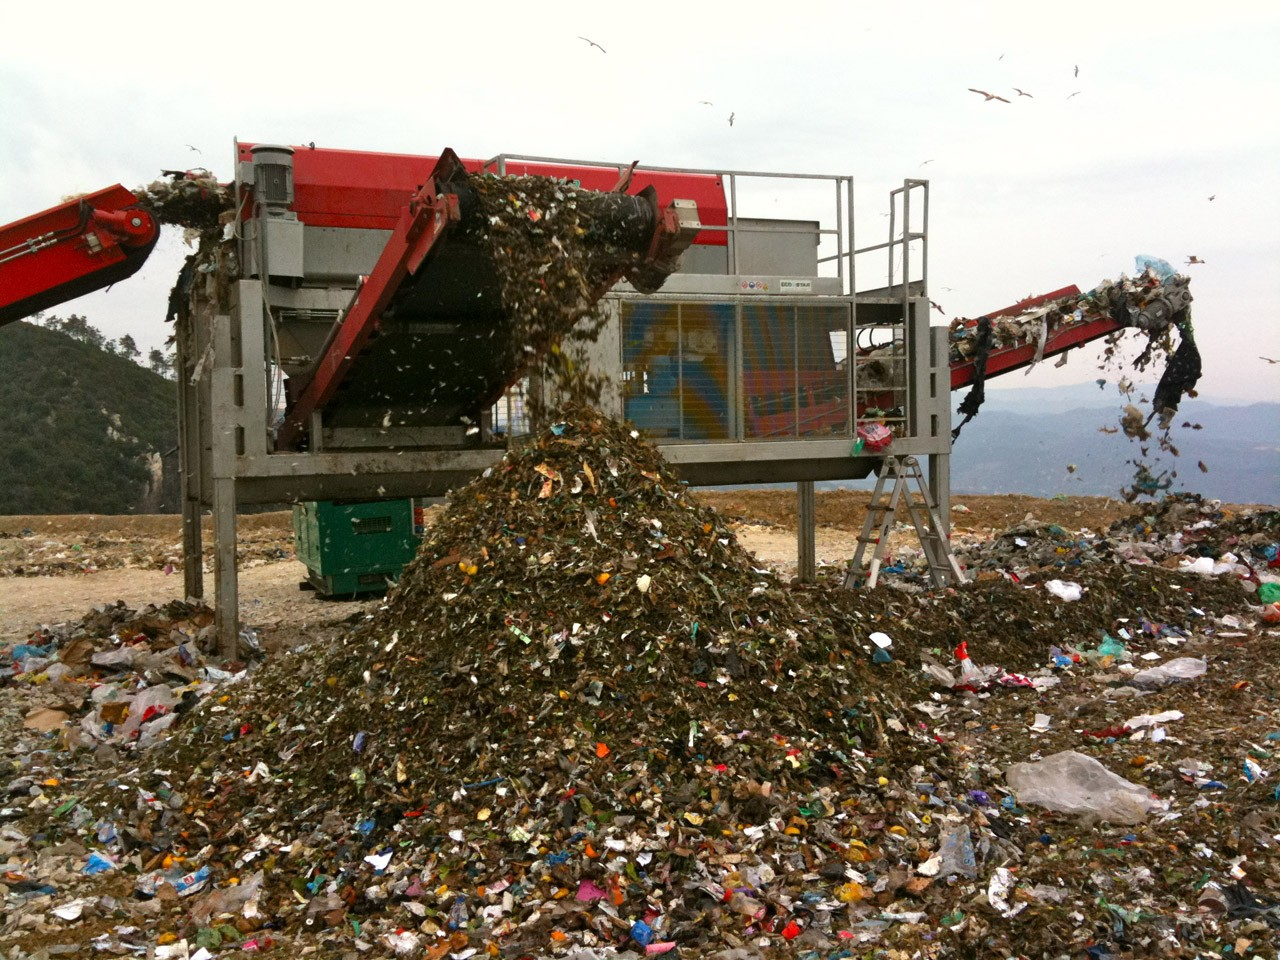 MSW and Landfills